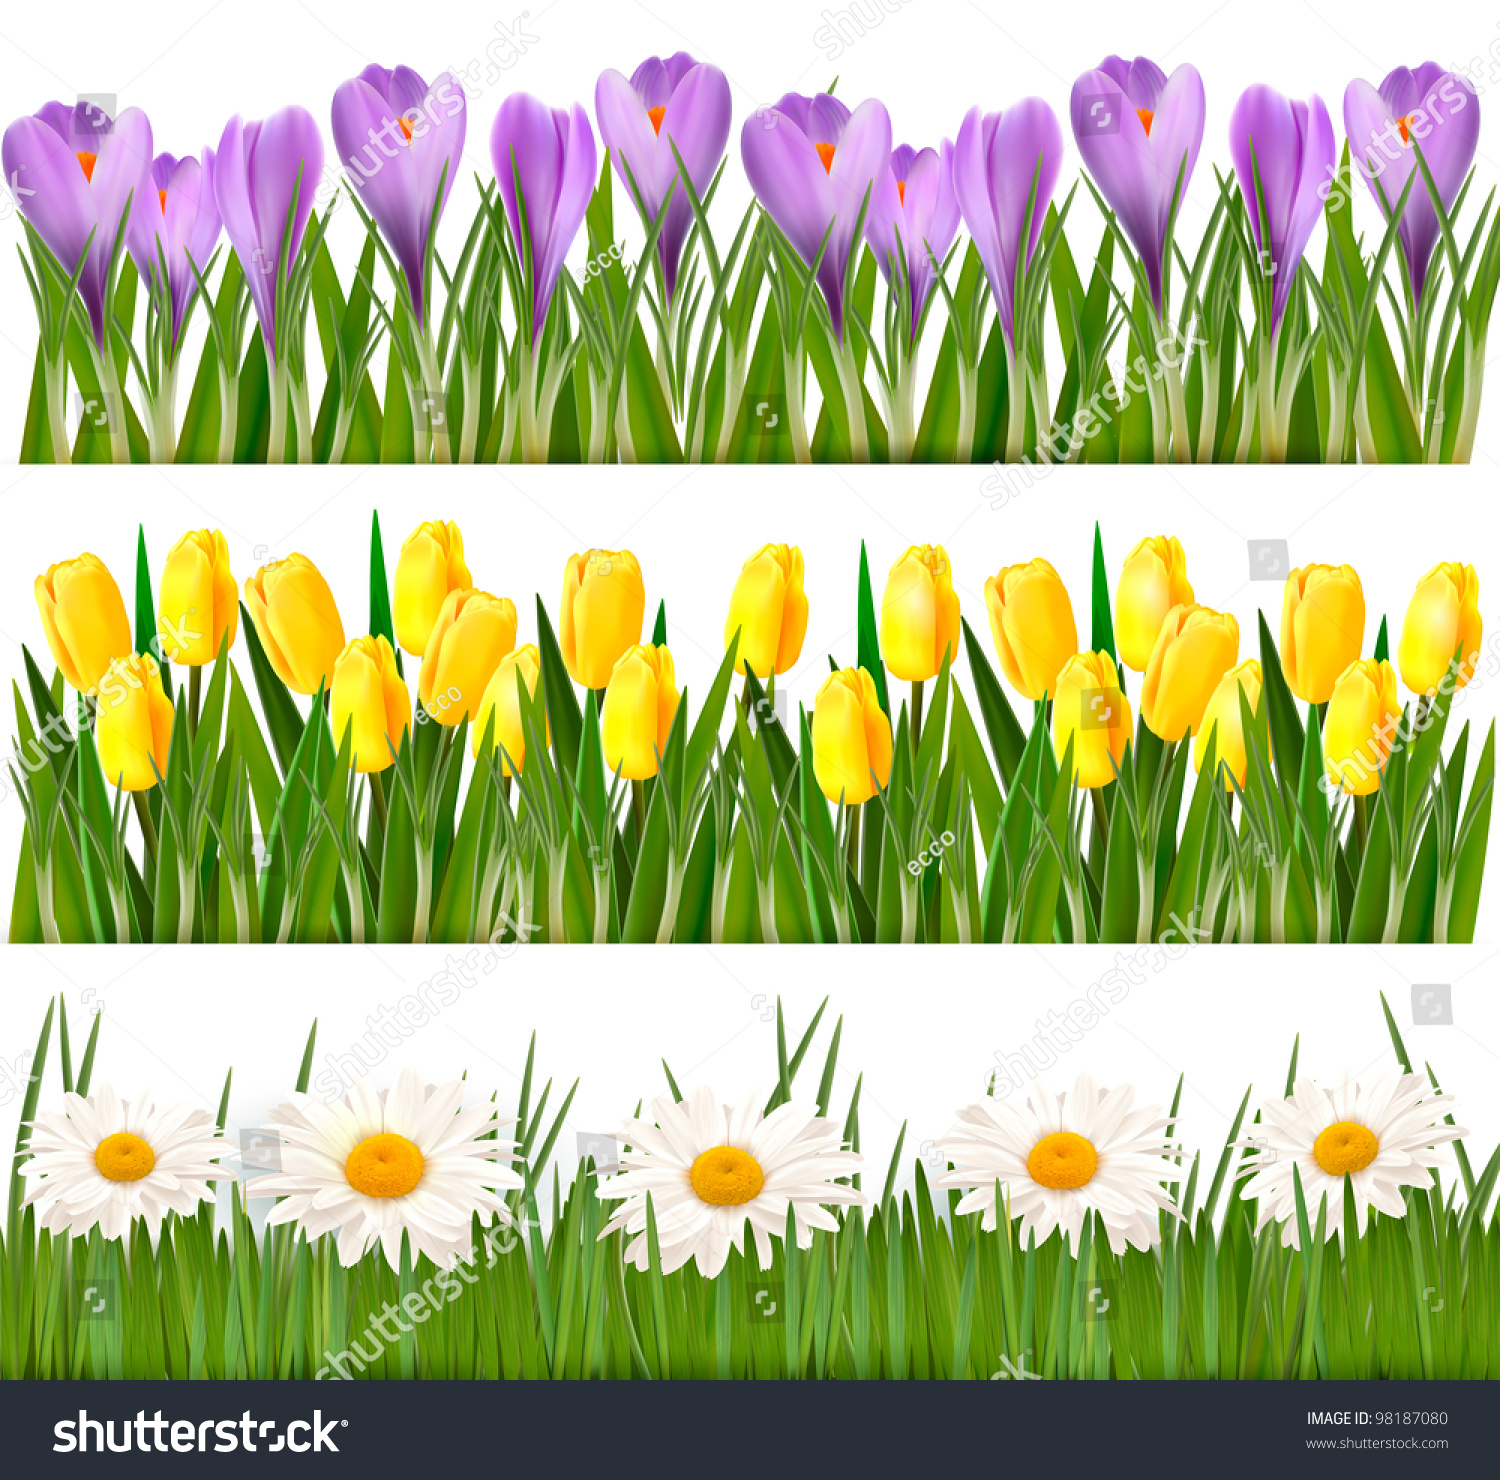 Royalty Free Fresh Spring Flower Borders Vector 98187080 Stock